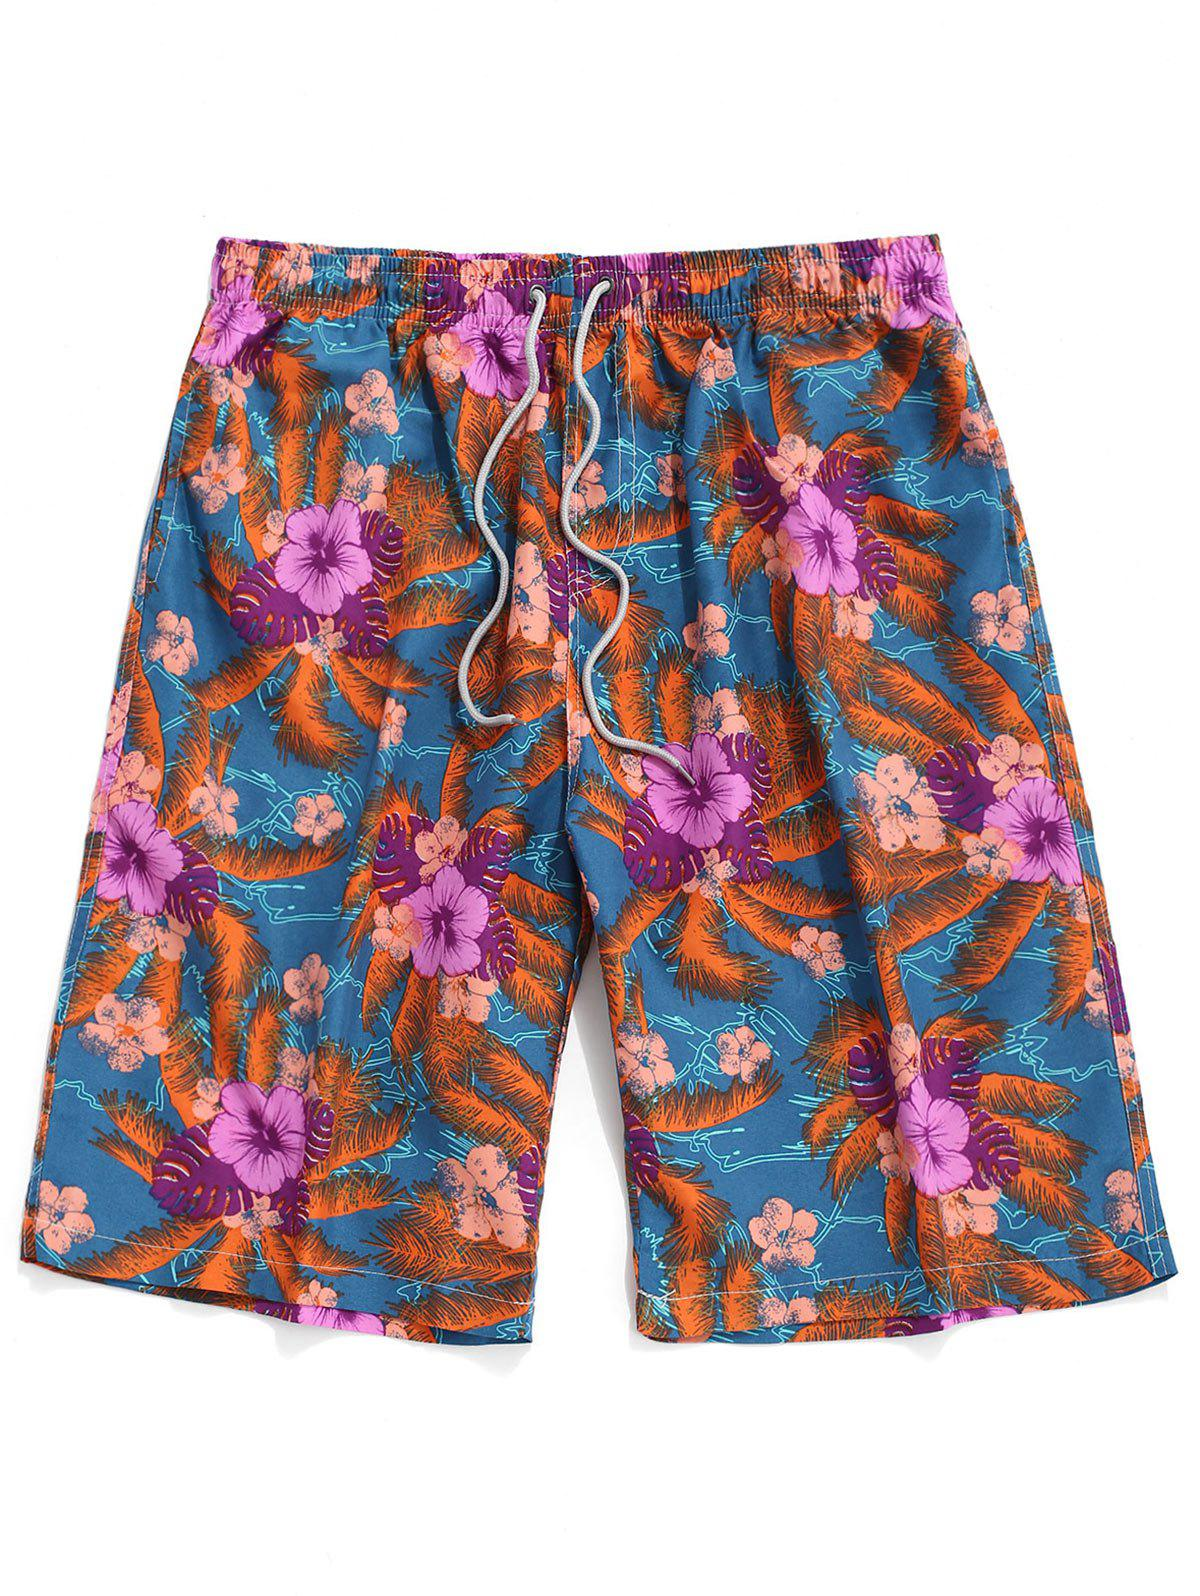 Floral Pattern Casual Board Shorts - multicolor A XS